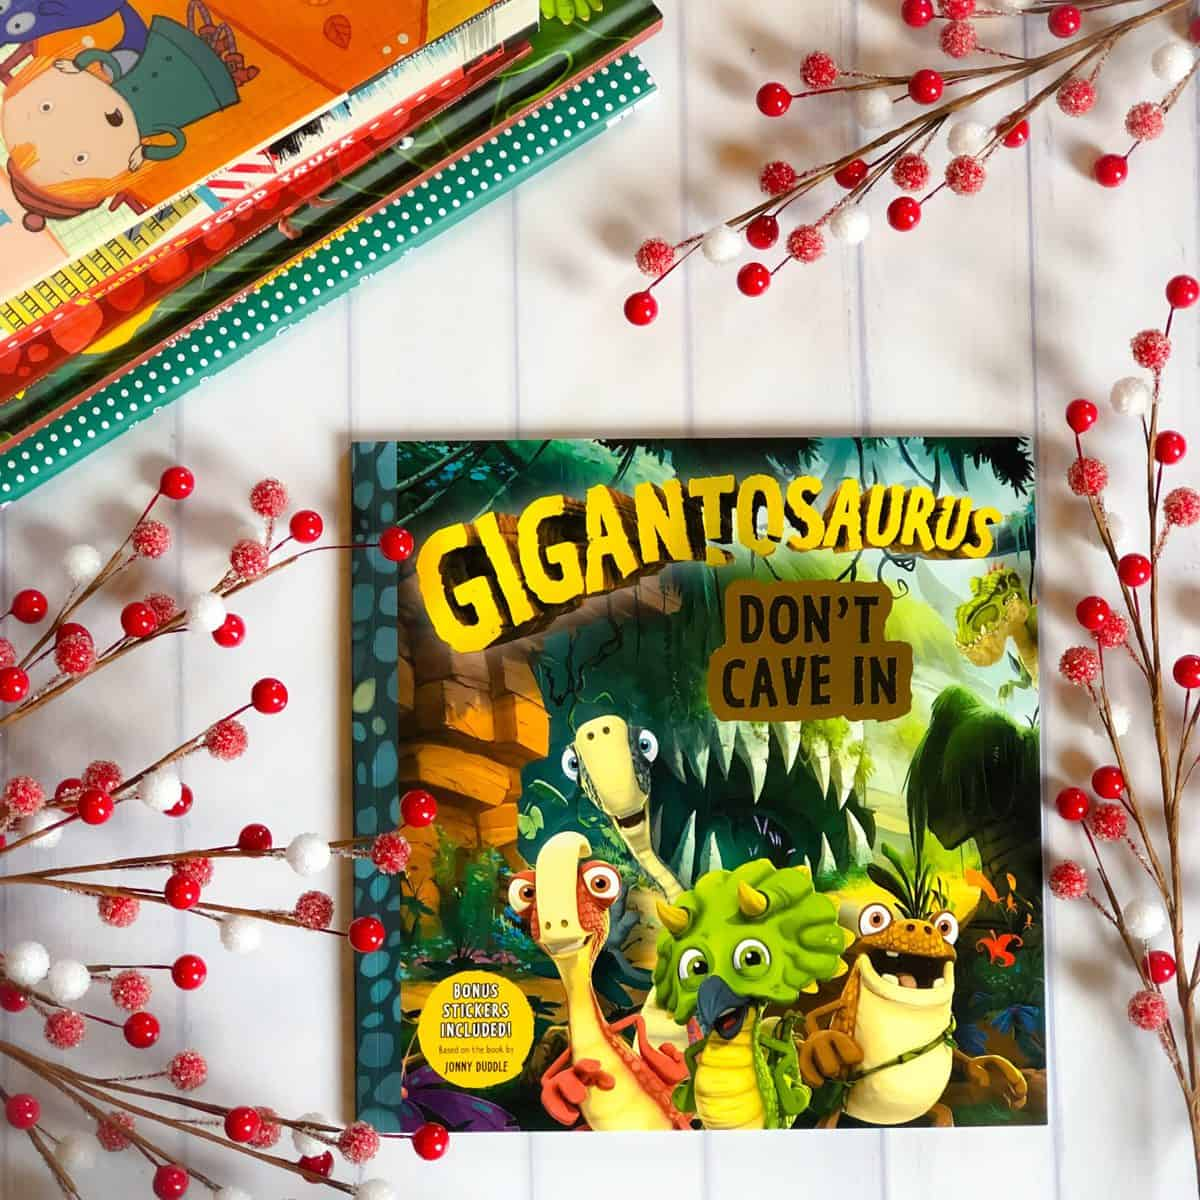 Gigantosaurus and Book